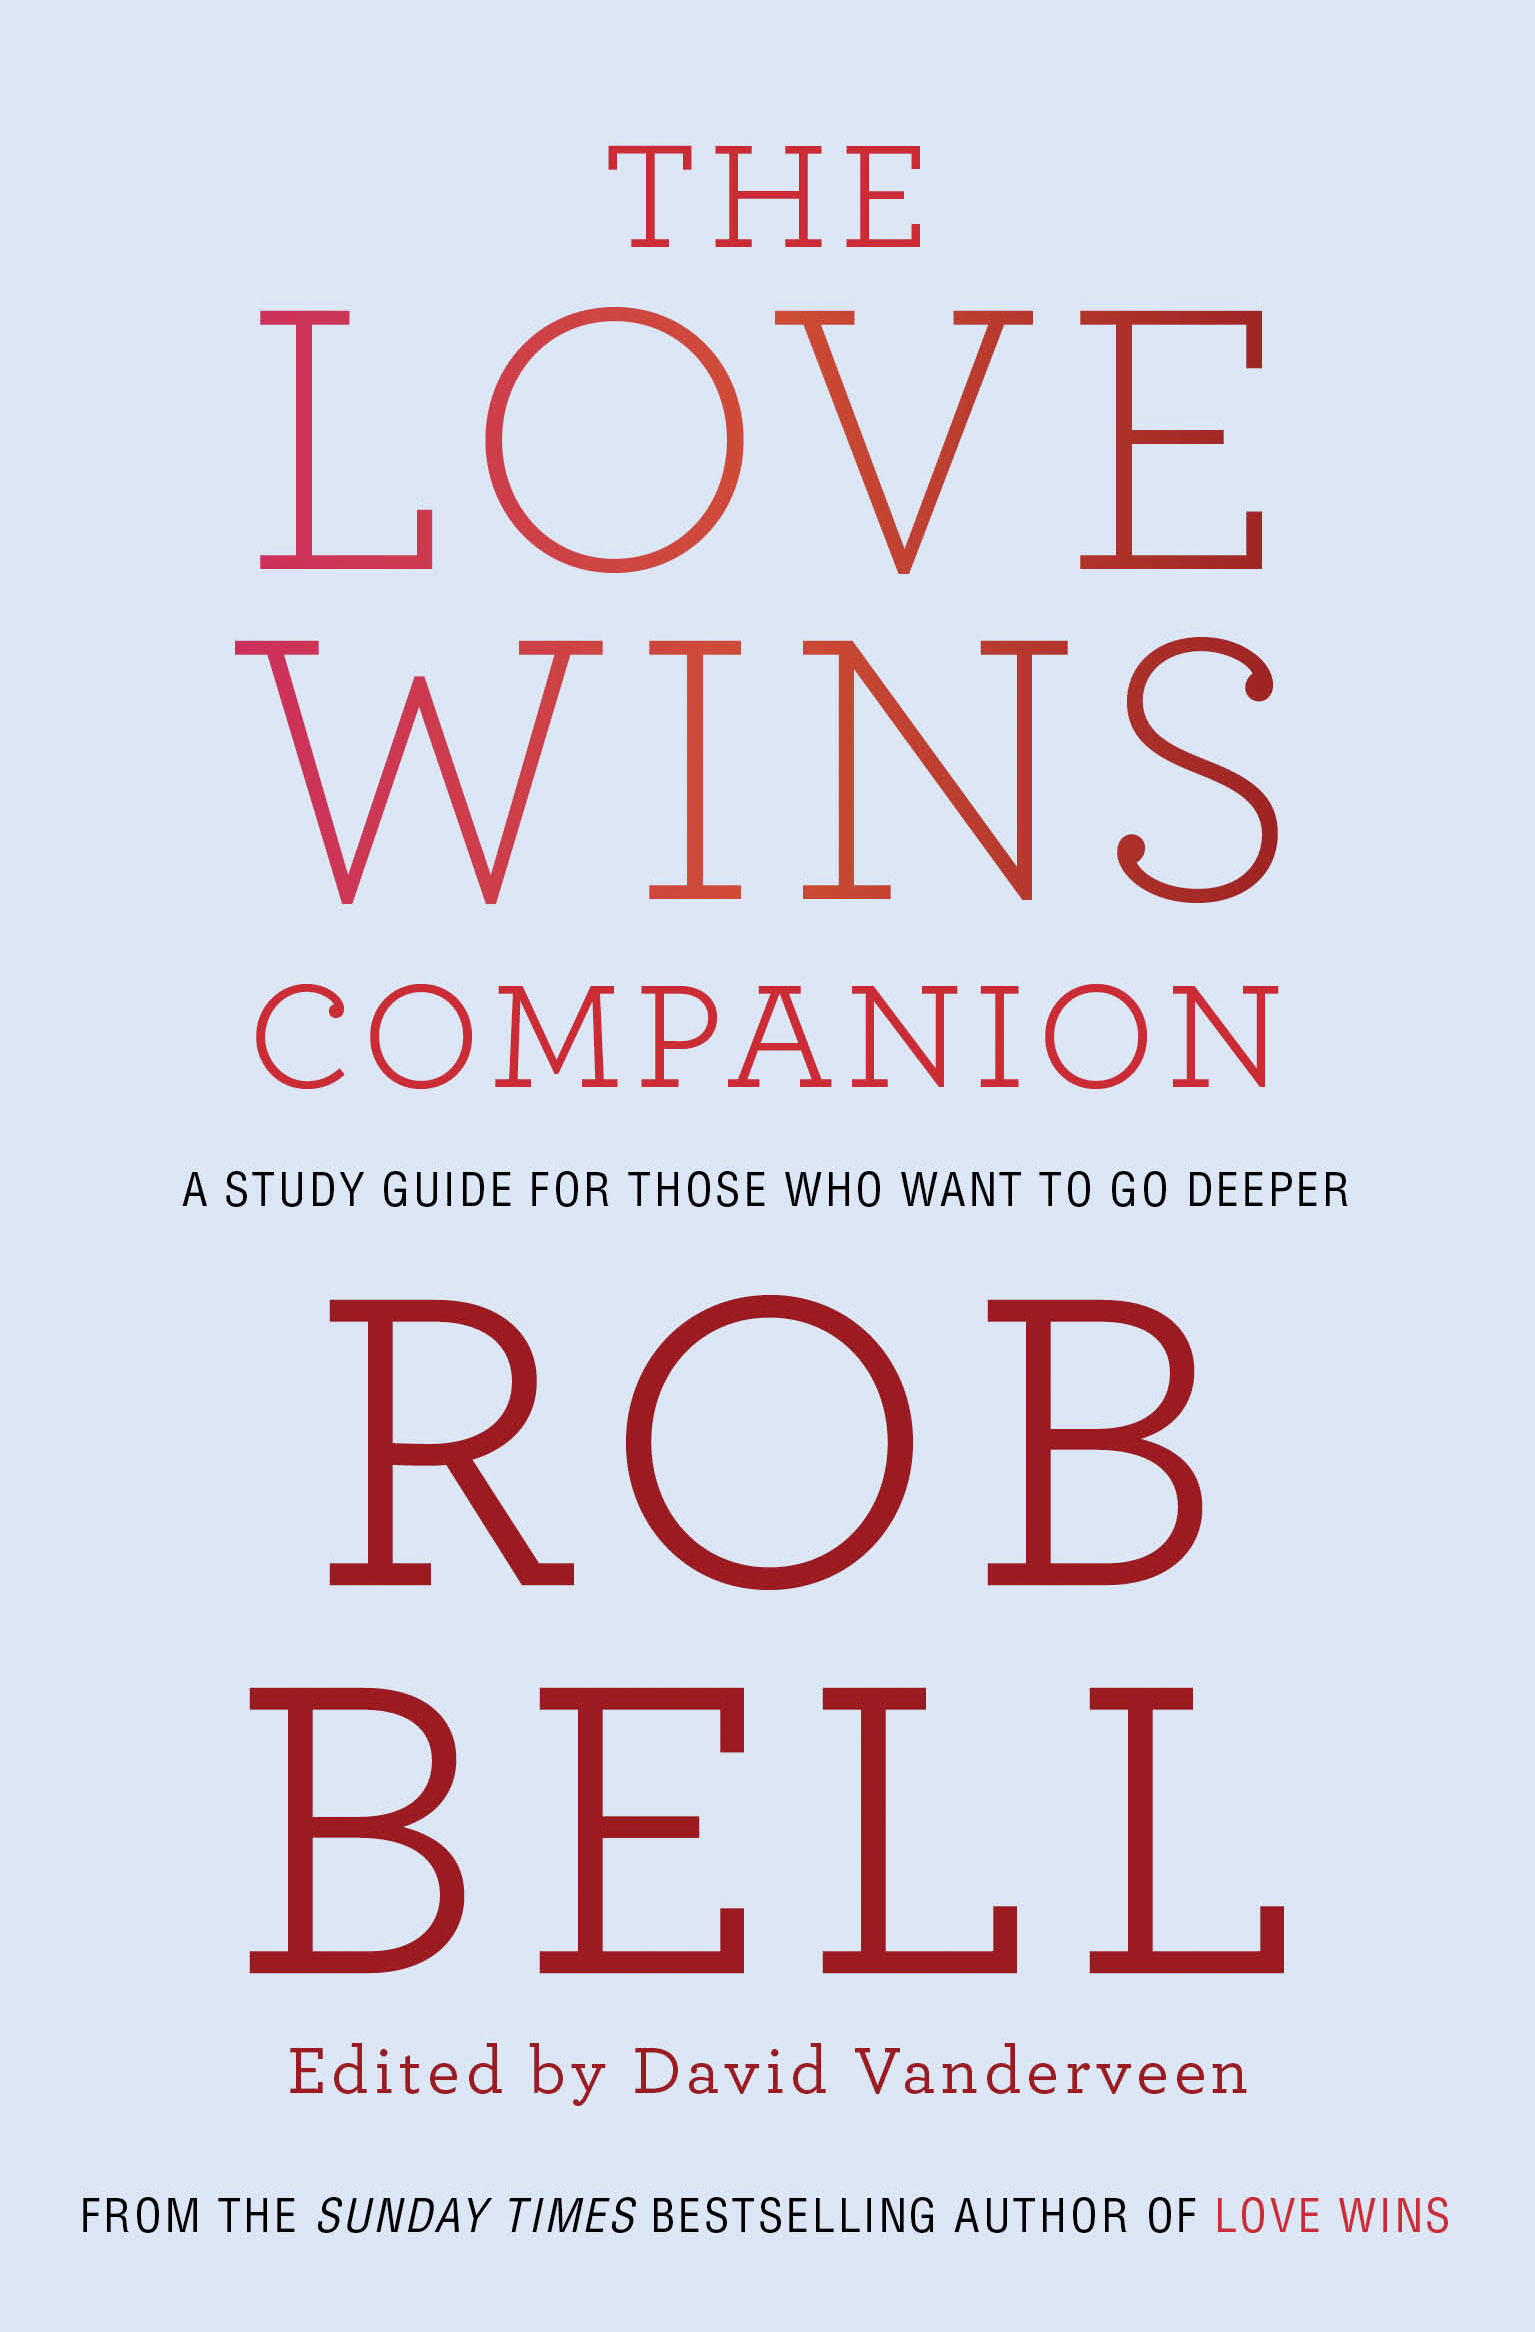 Rob Bell The Love Wins Companion: A Study Guide For Those Who Want to Go Deeper stone rob a companion to luis buñuel